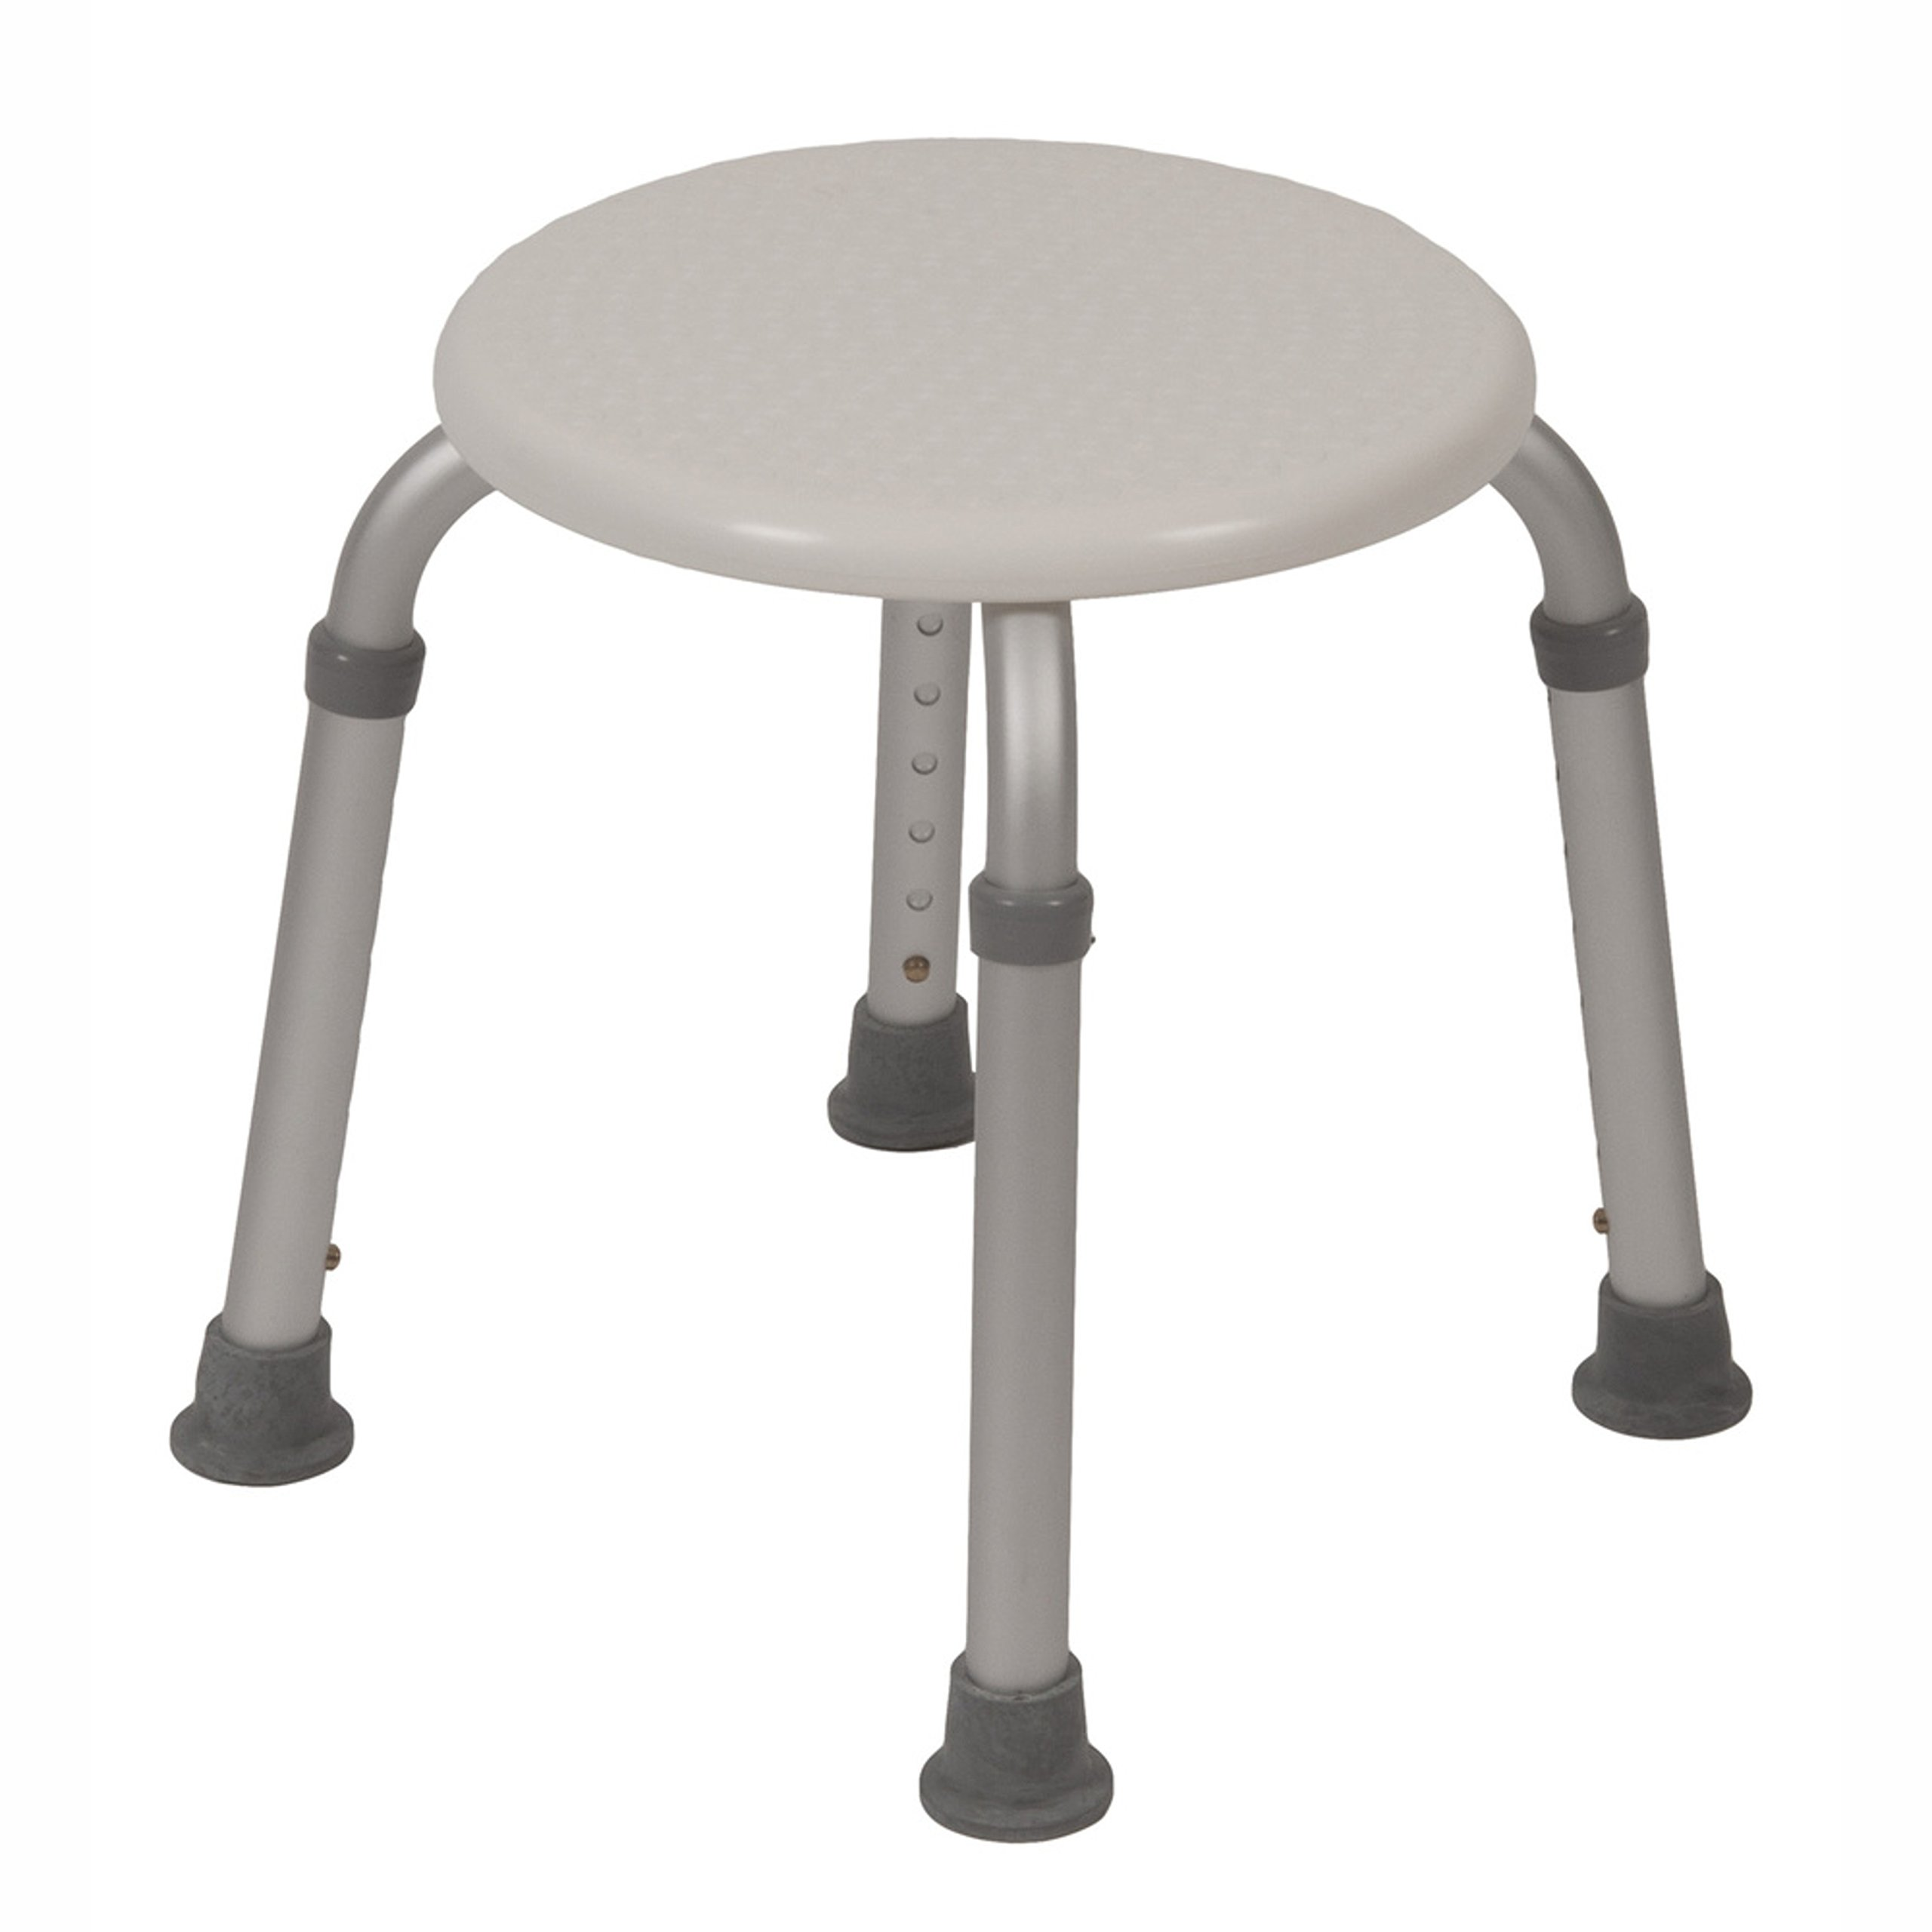 PCP Round Shower Stool Mobility Bath Aid Seat, White